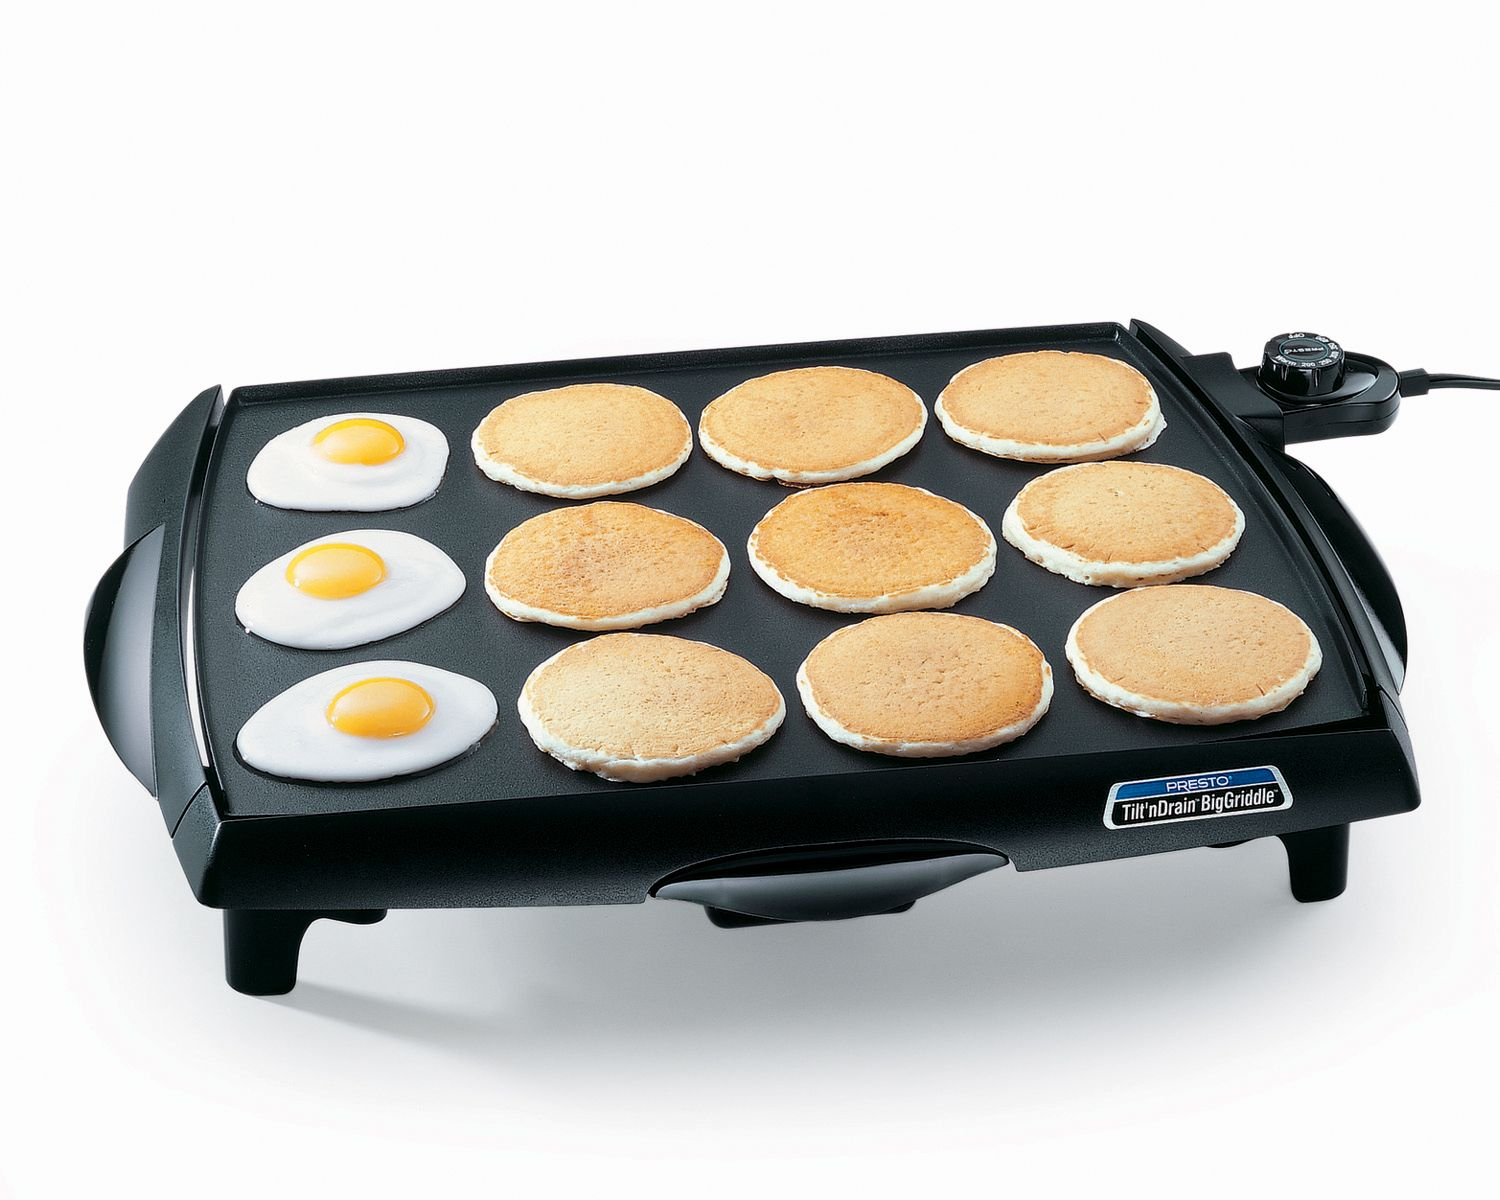 Presto  Tilt'n Drain Big Griddle Cool